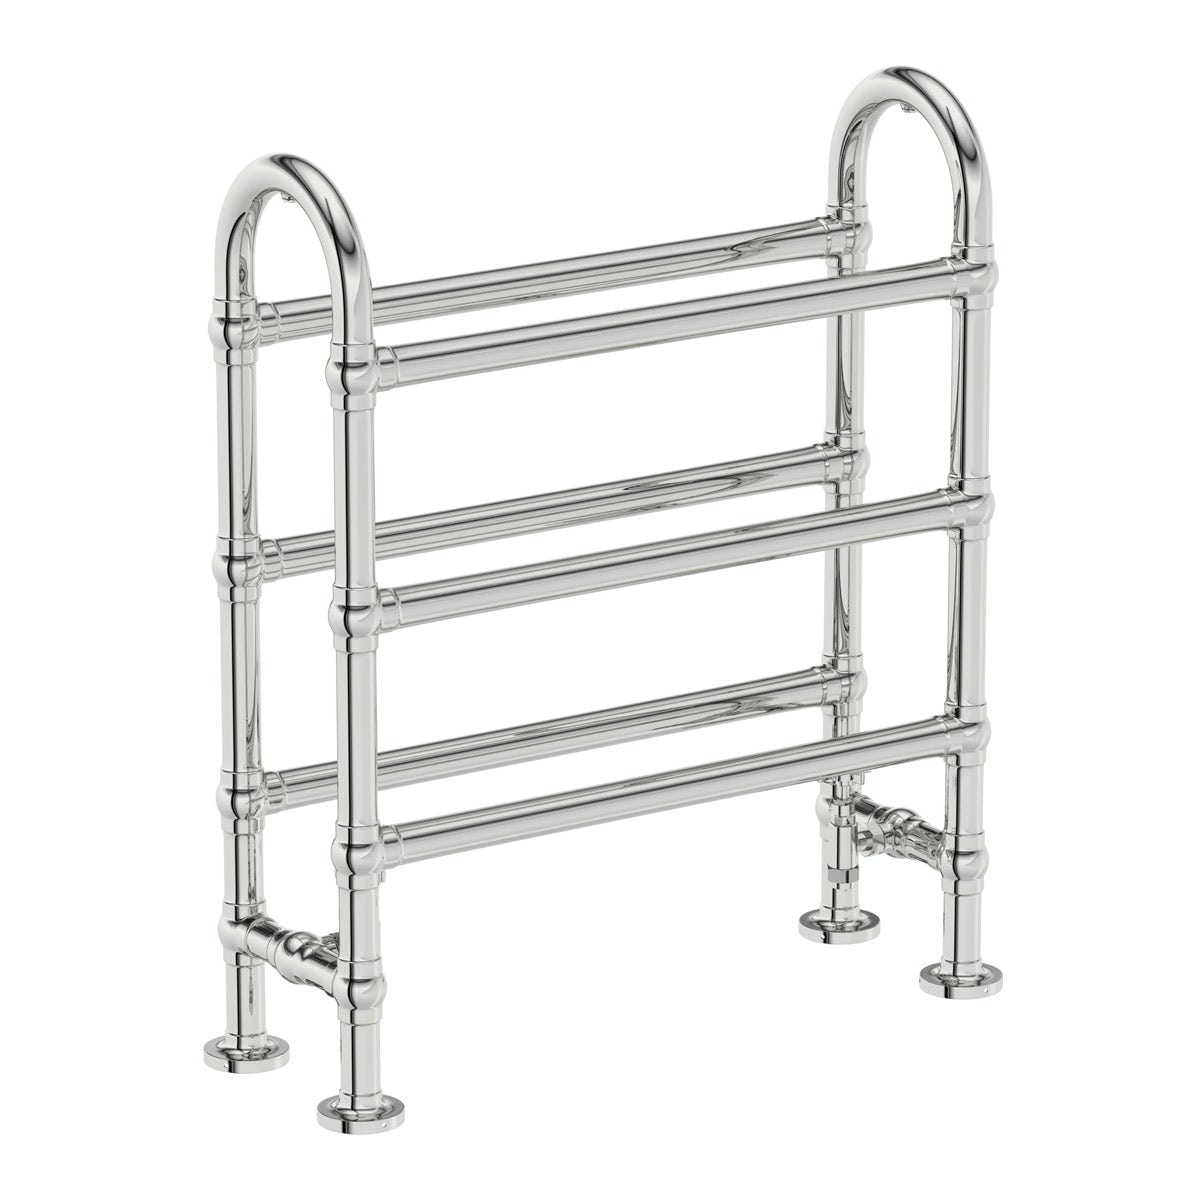 The Bath Co. Camberley traditional heated towel rail 778 x 686 offer pack